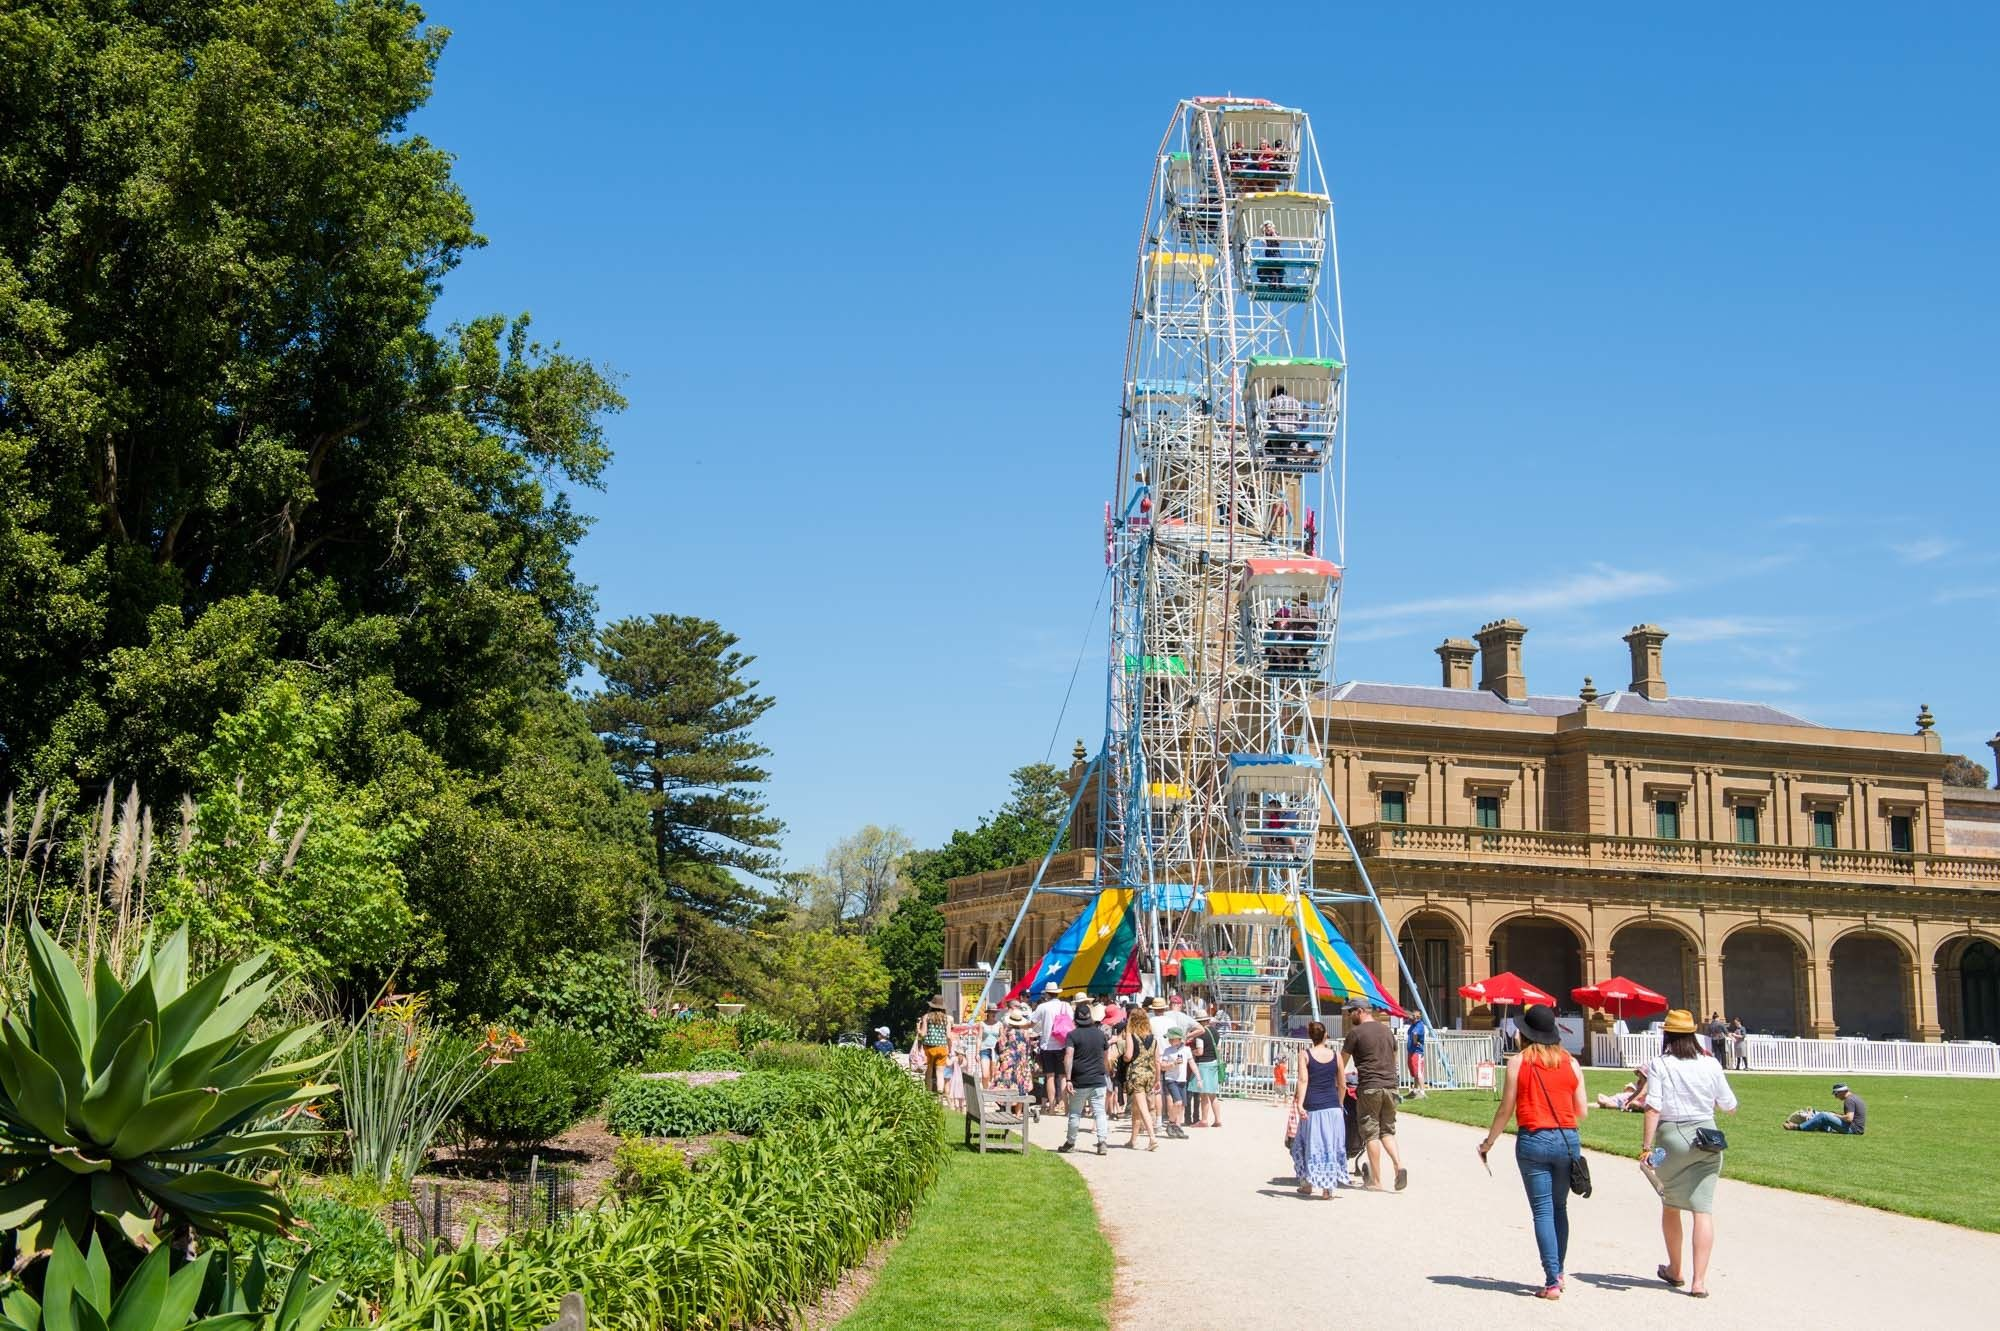 The ferris wheel and Werribee Mansion